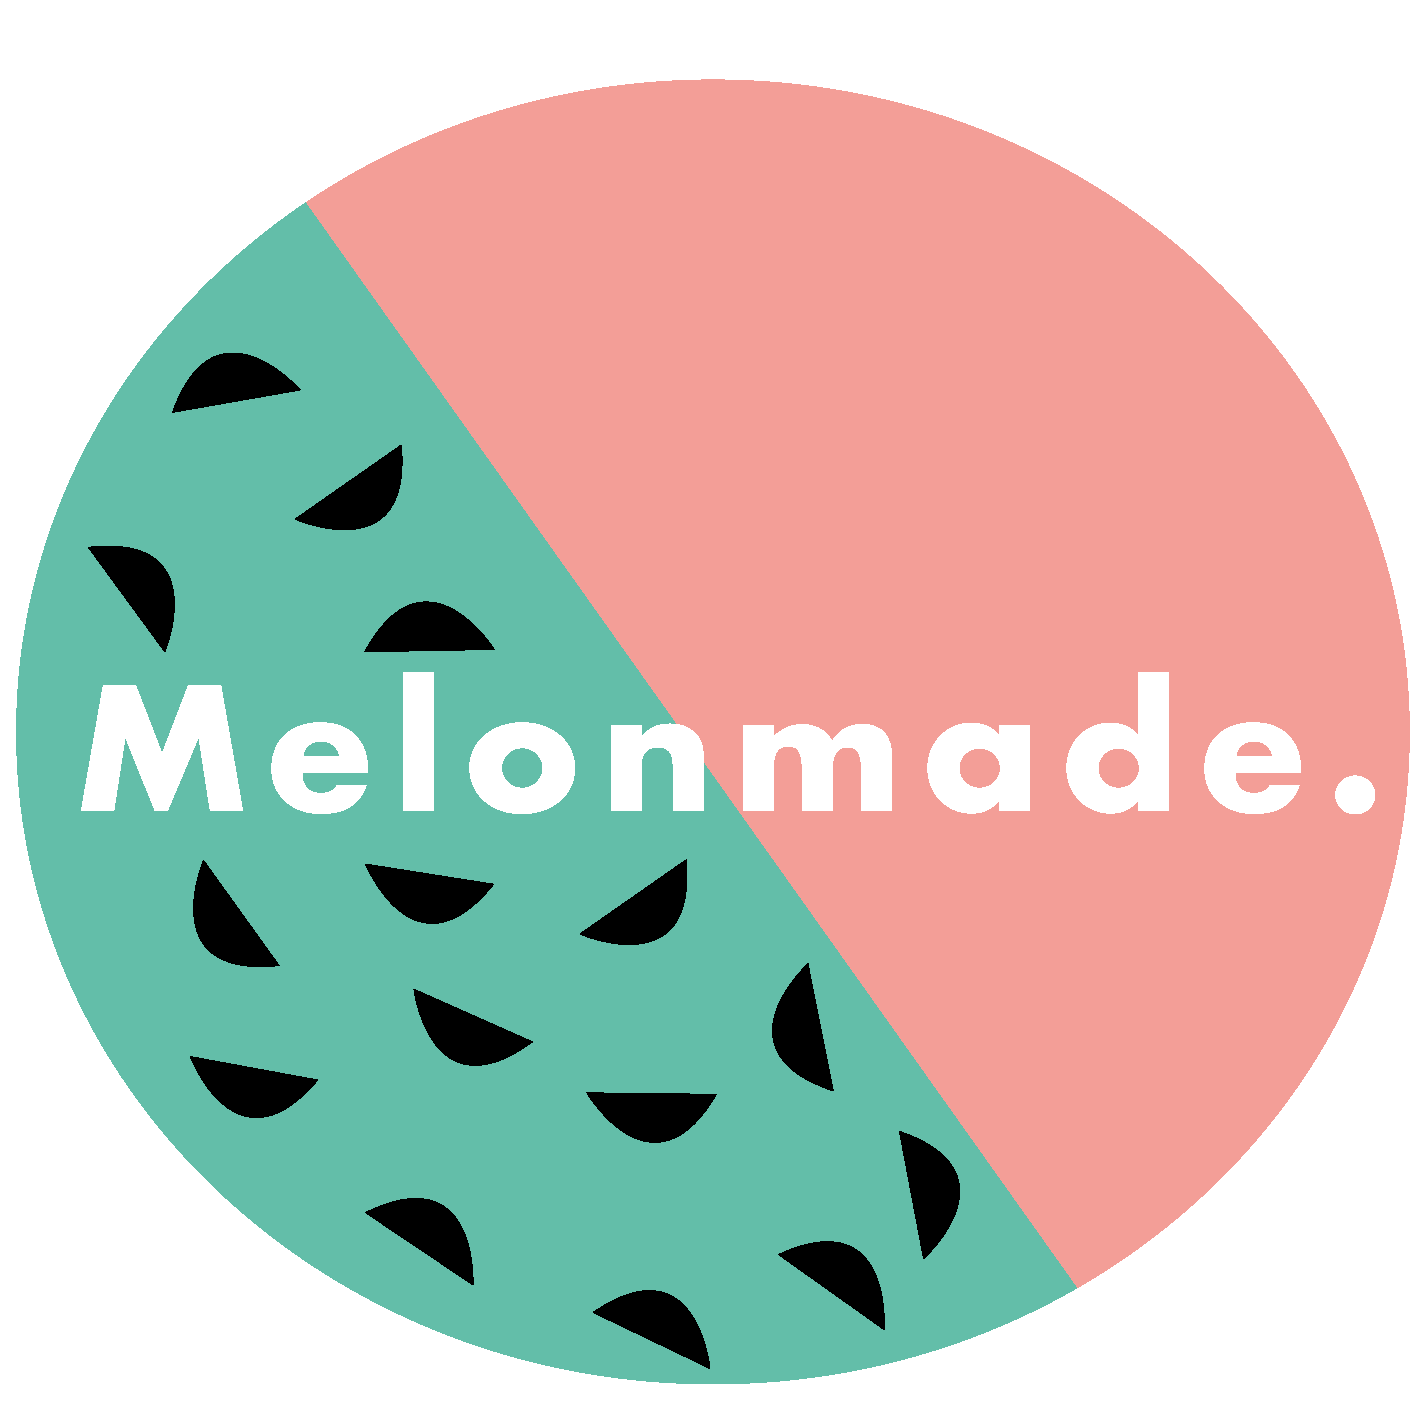 melonmade